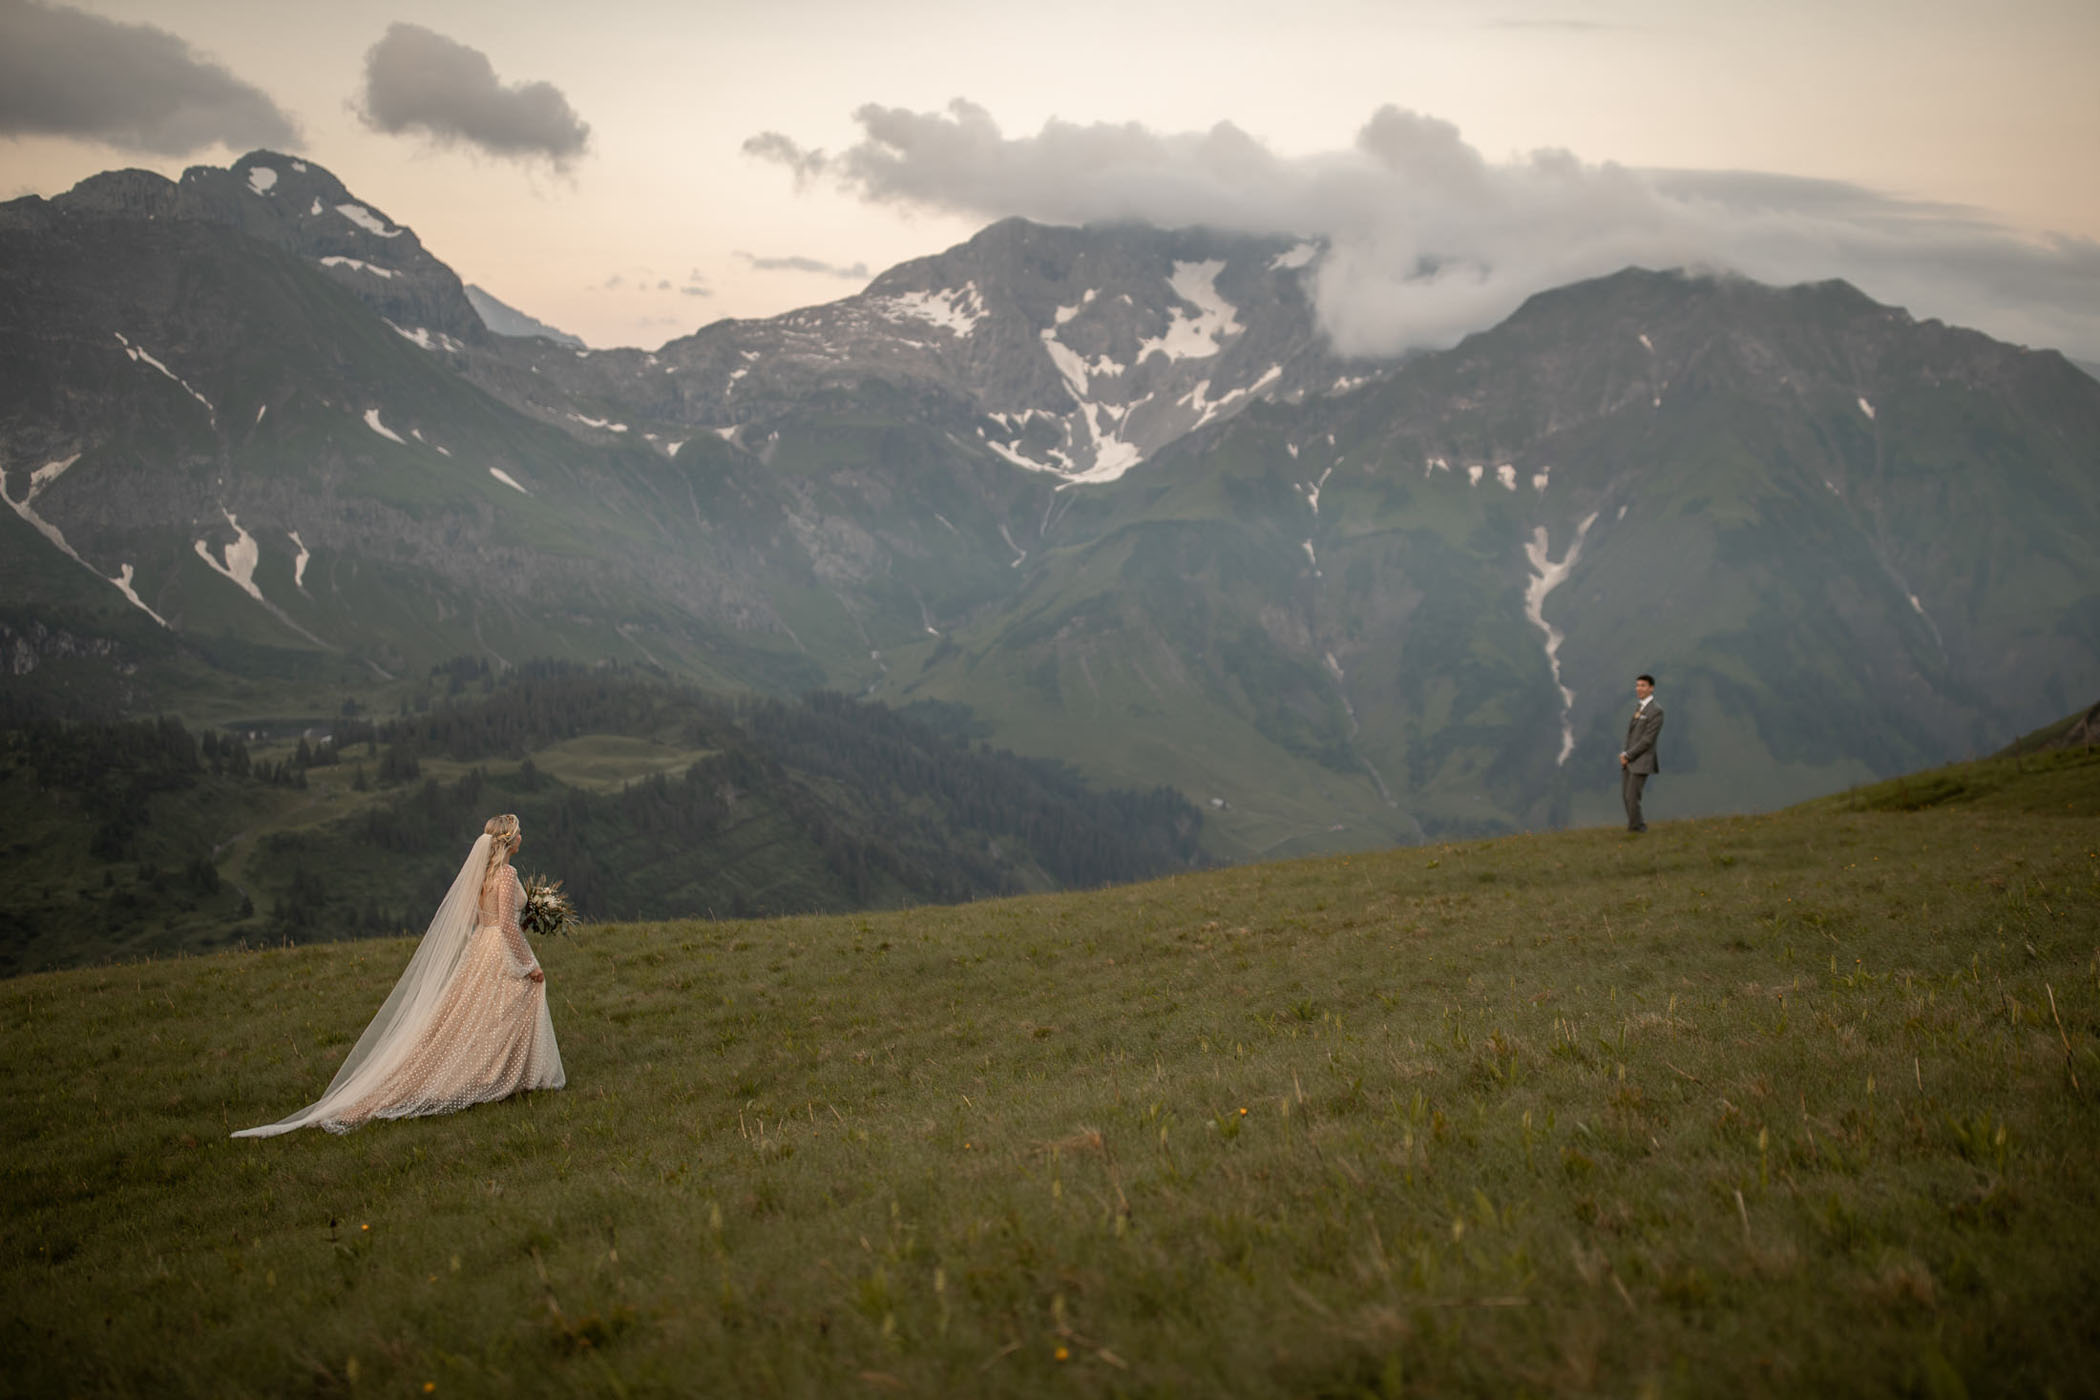 Bride in gold dress walks up to her groom on a mountain top